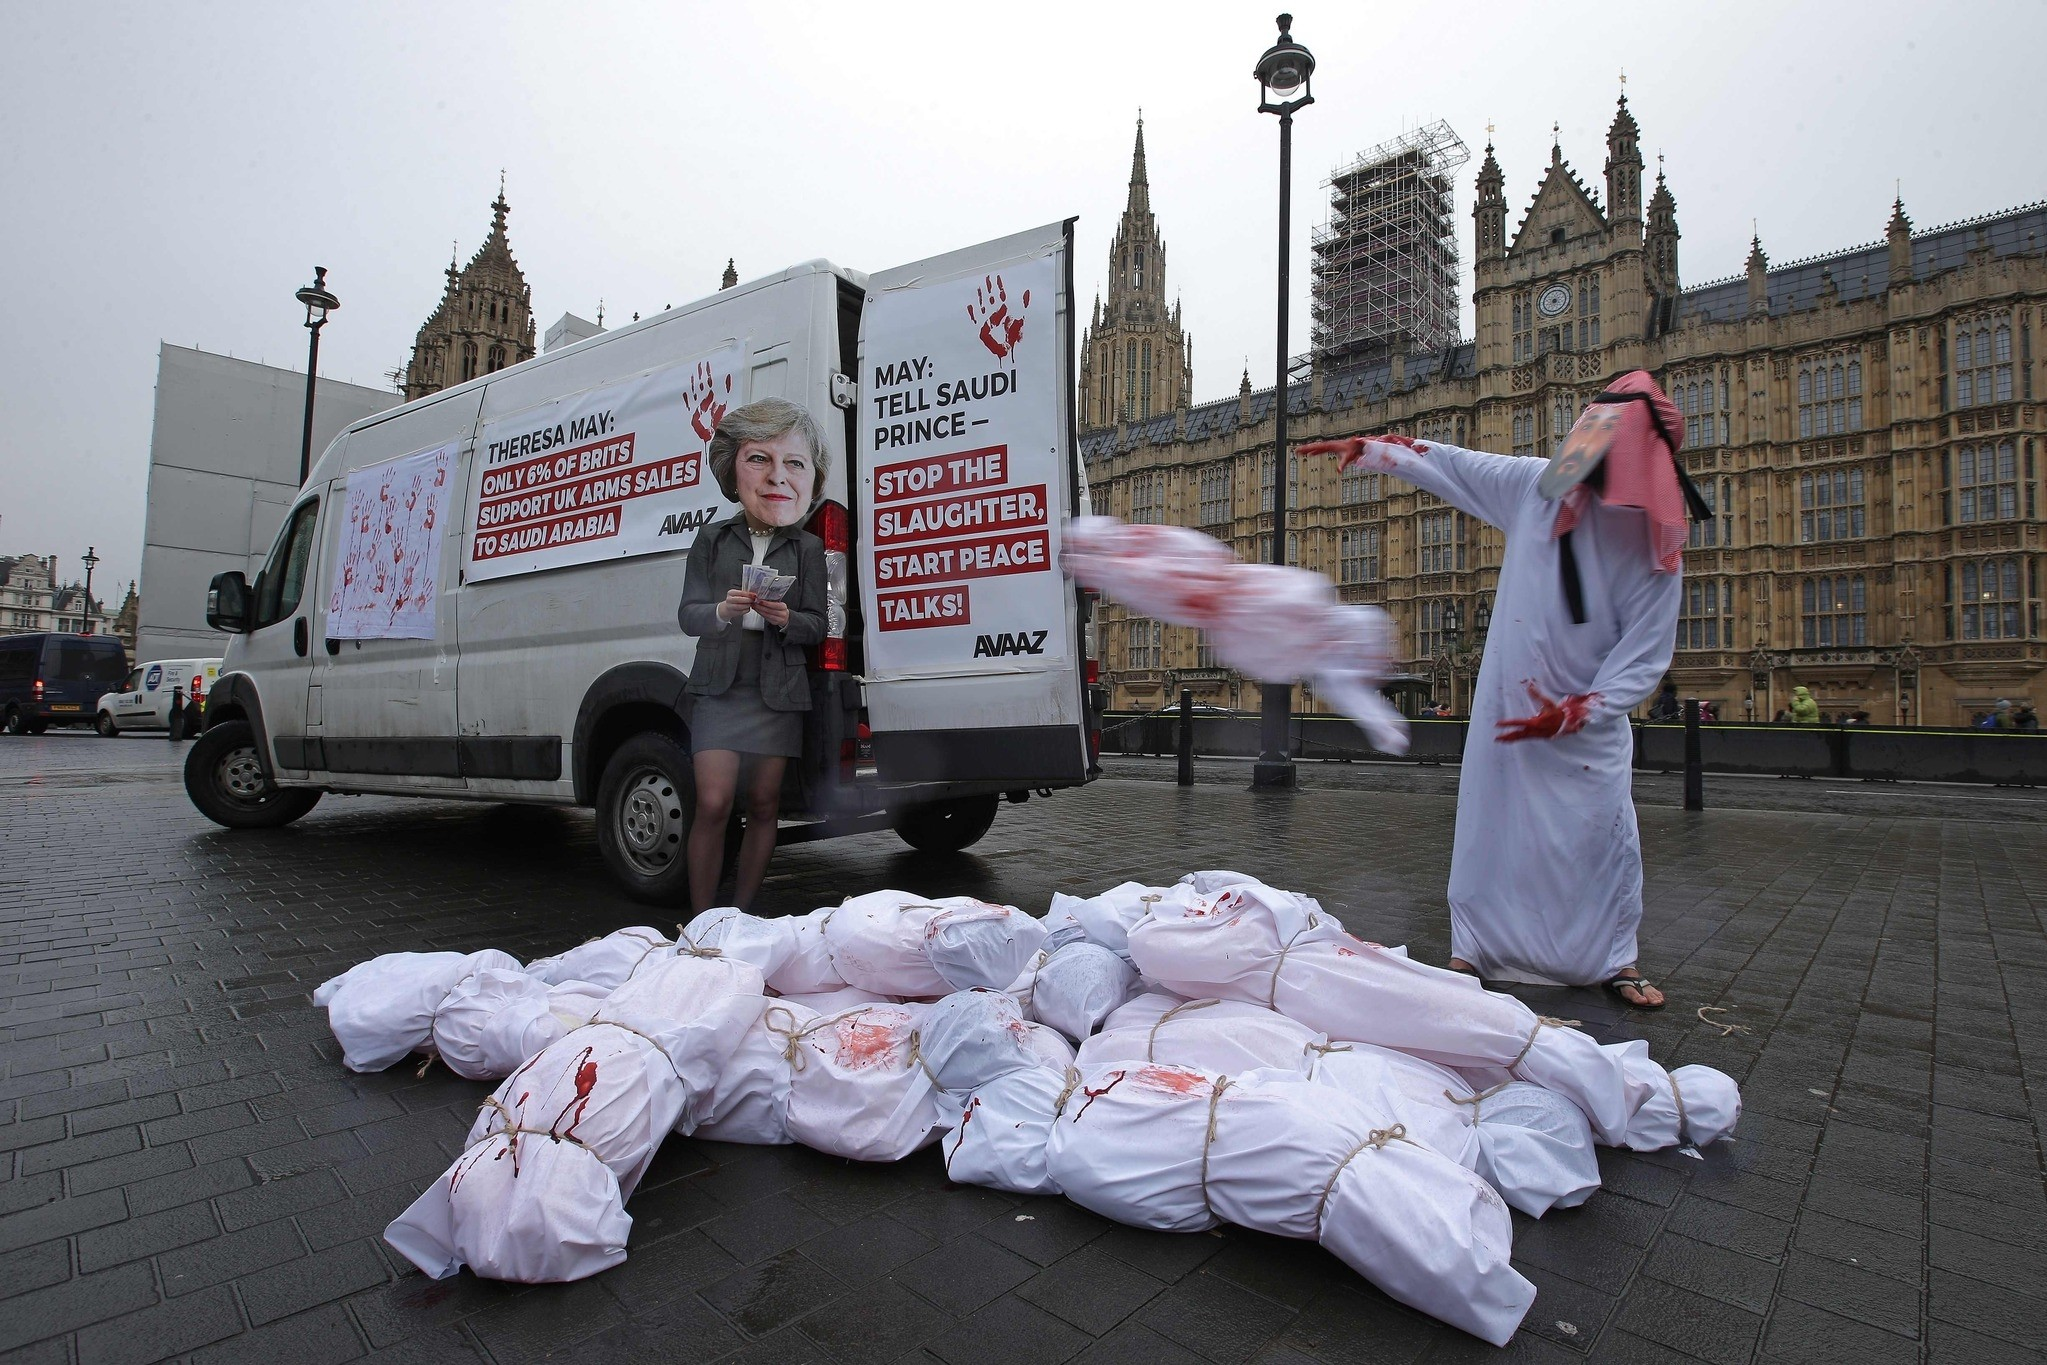 Demonstrators wearing masks depicting Britain's Prime Minister Theresa May (L) and Saudi Arabia's Crown Prince Mohammed bin Salman protest outside of the Houses of Parliament in London on March 7, 2018. (AFP Photo)